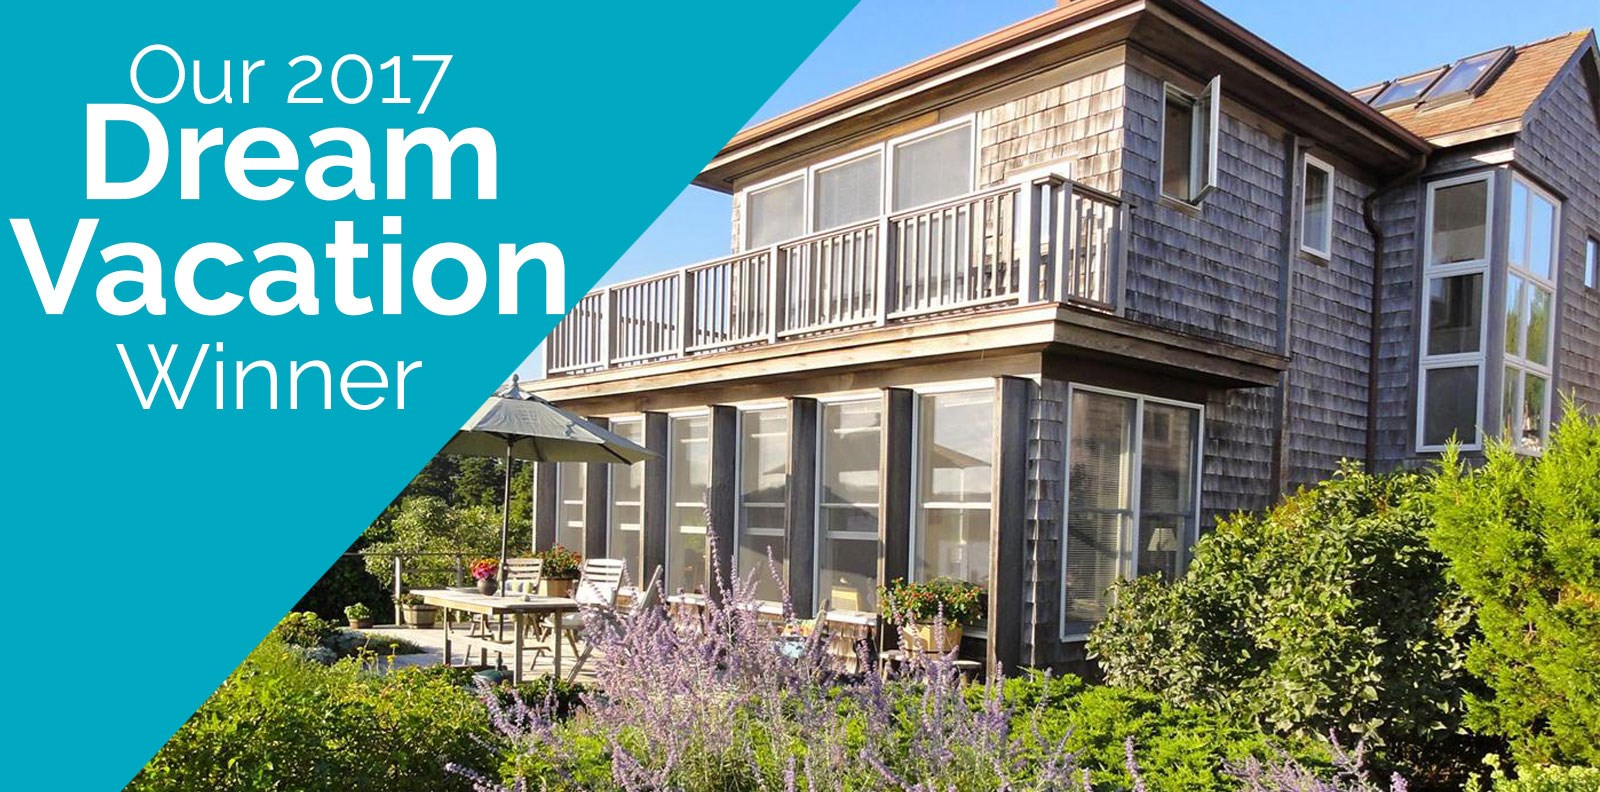 A week long vacation in Wellfleet doesn't sound too bad, especially when it's free! That's exactly what one lucky person received when they won the 2017 We Need a Dream Vacation giveaway!